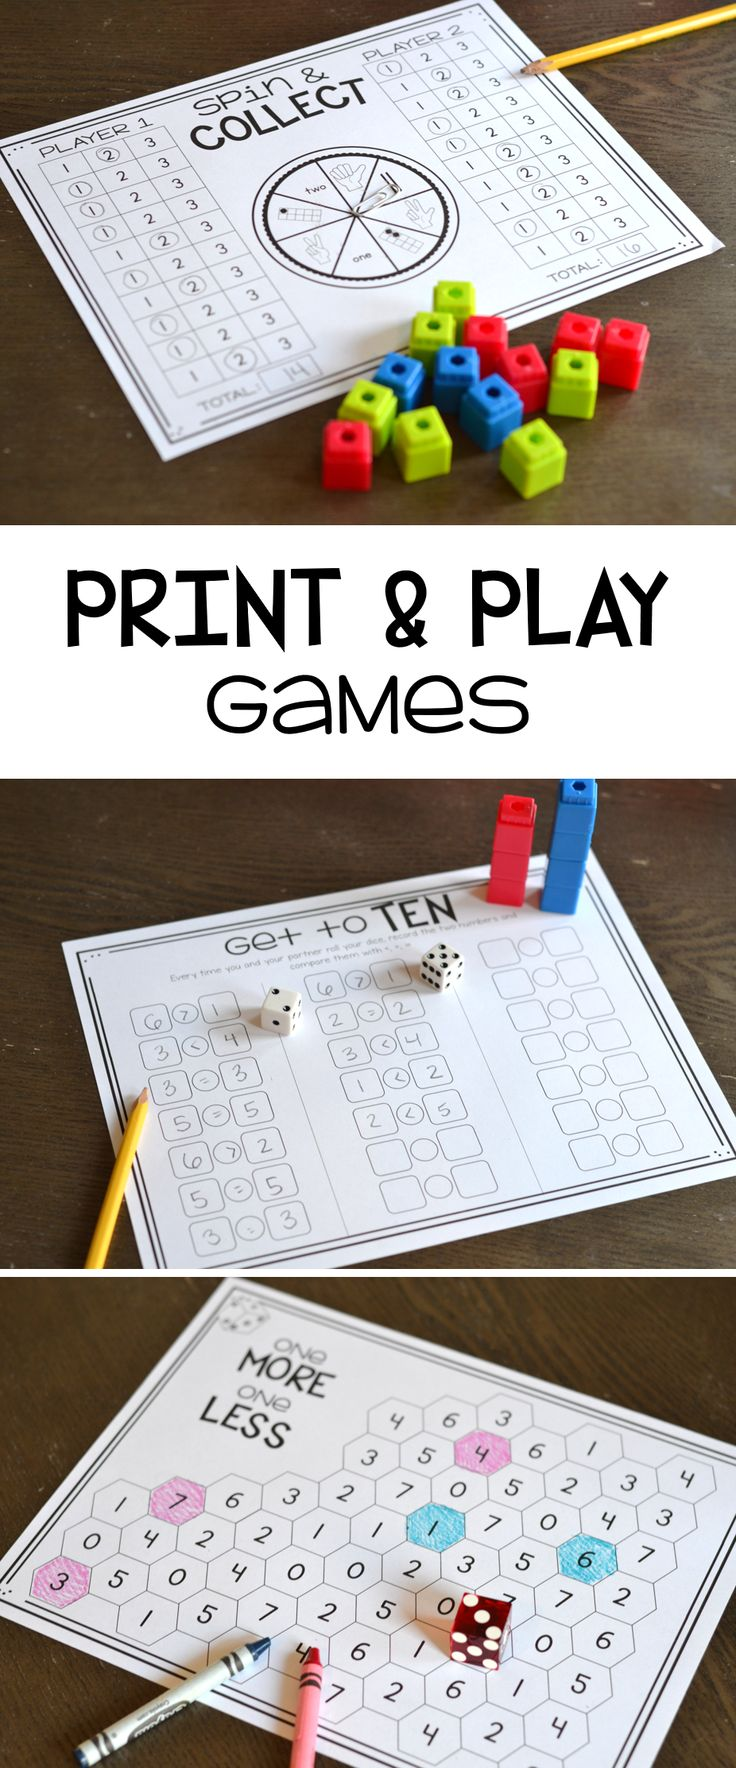 Tons of print and play math games for addition, subtraction, numbers sense, place value and more!